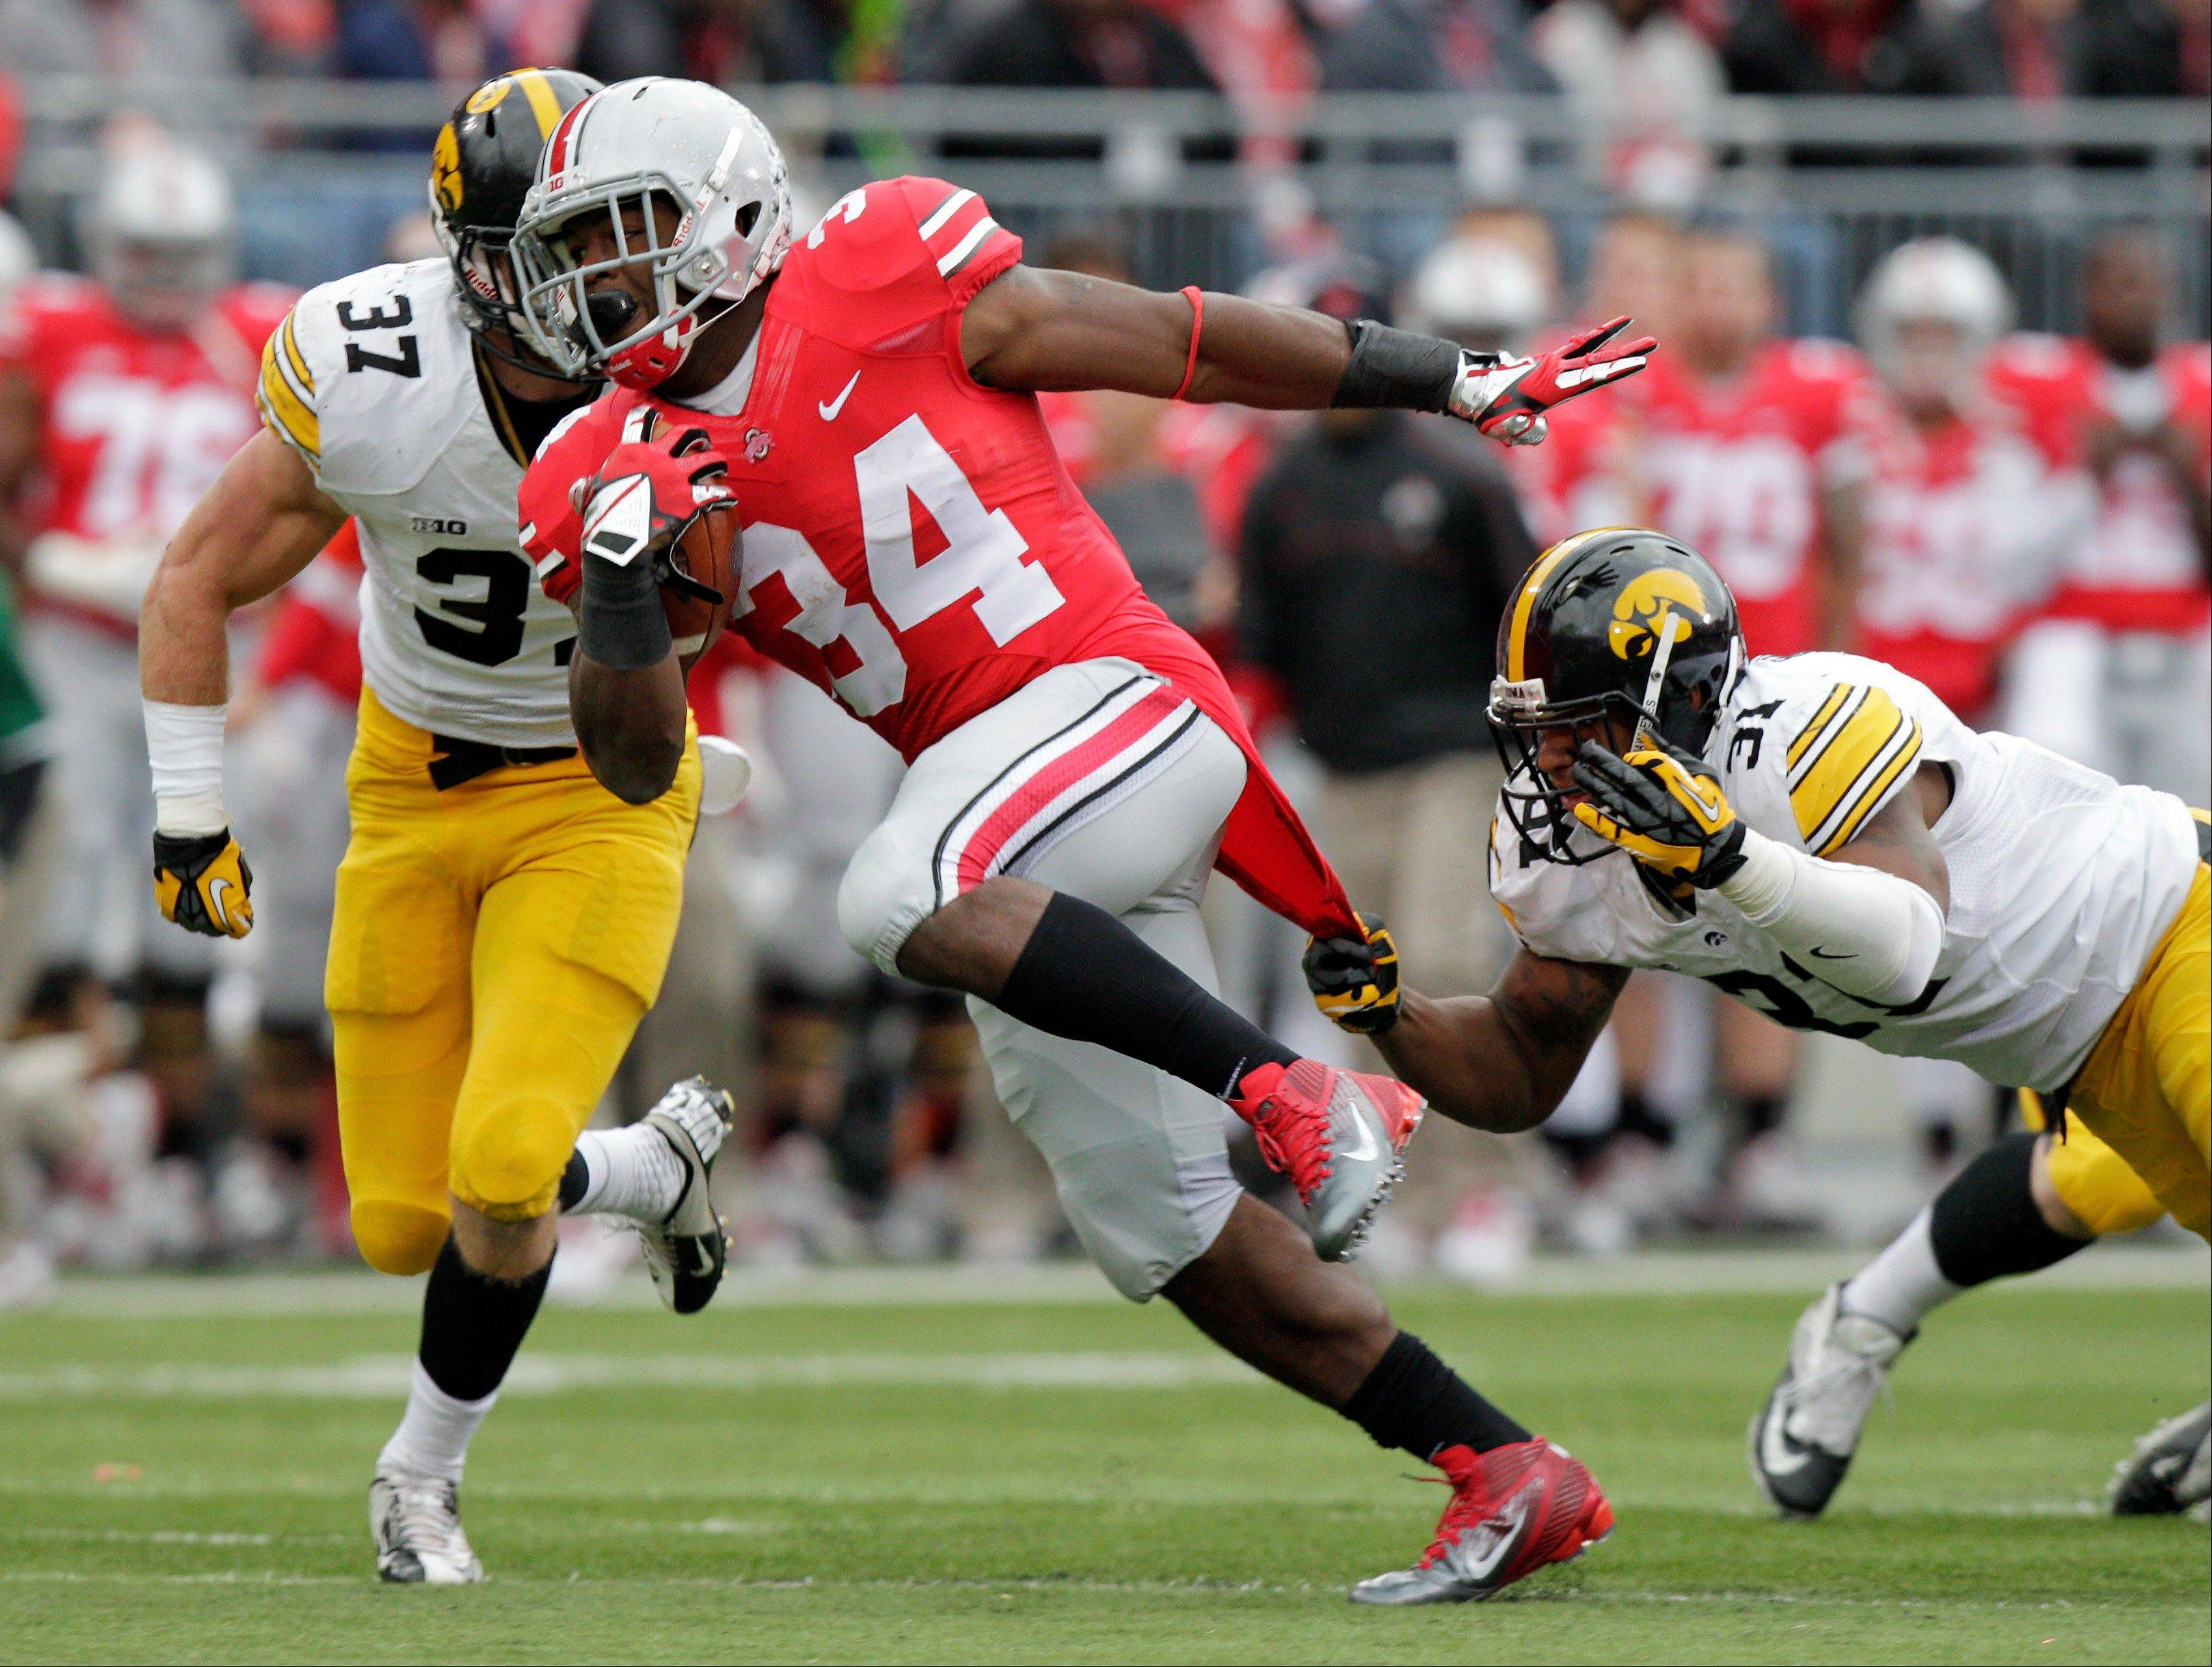 Ohio State�s Carlos Hyde runs between Iowa defenders John Lowdermilk, left, and Anthony Hitchens during the Oct. 19 game in Columbus, Ohio.